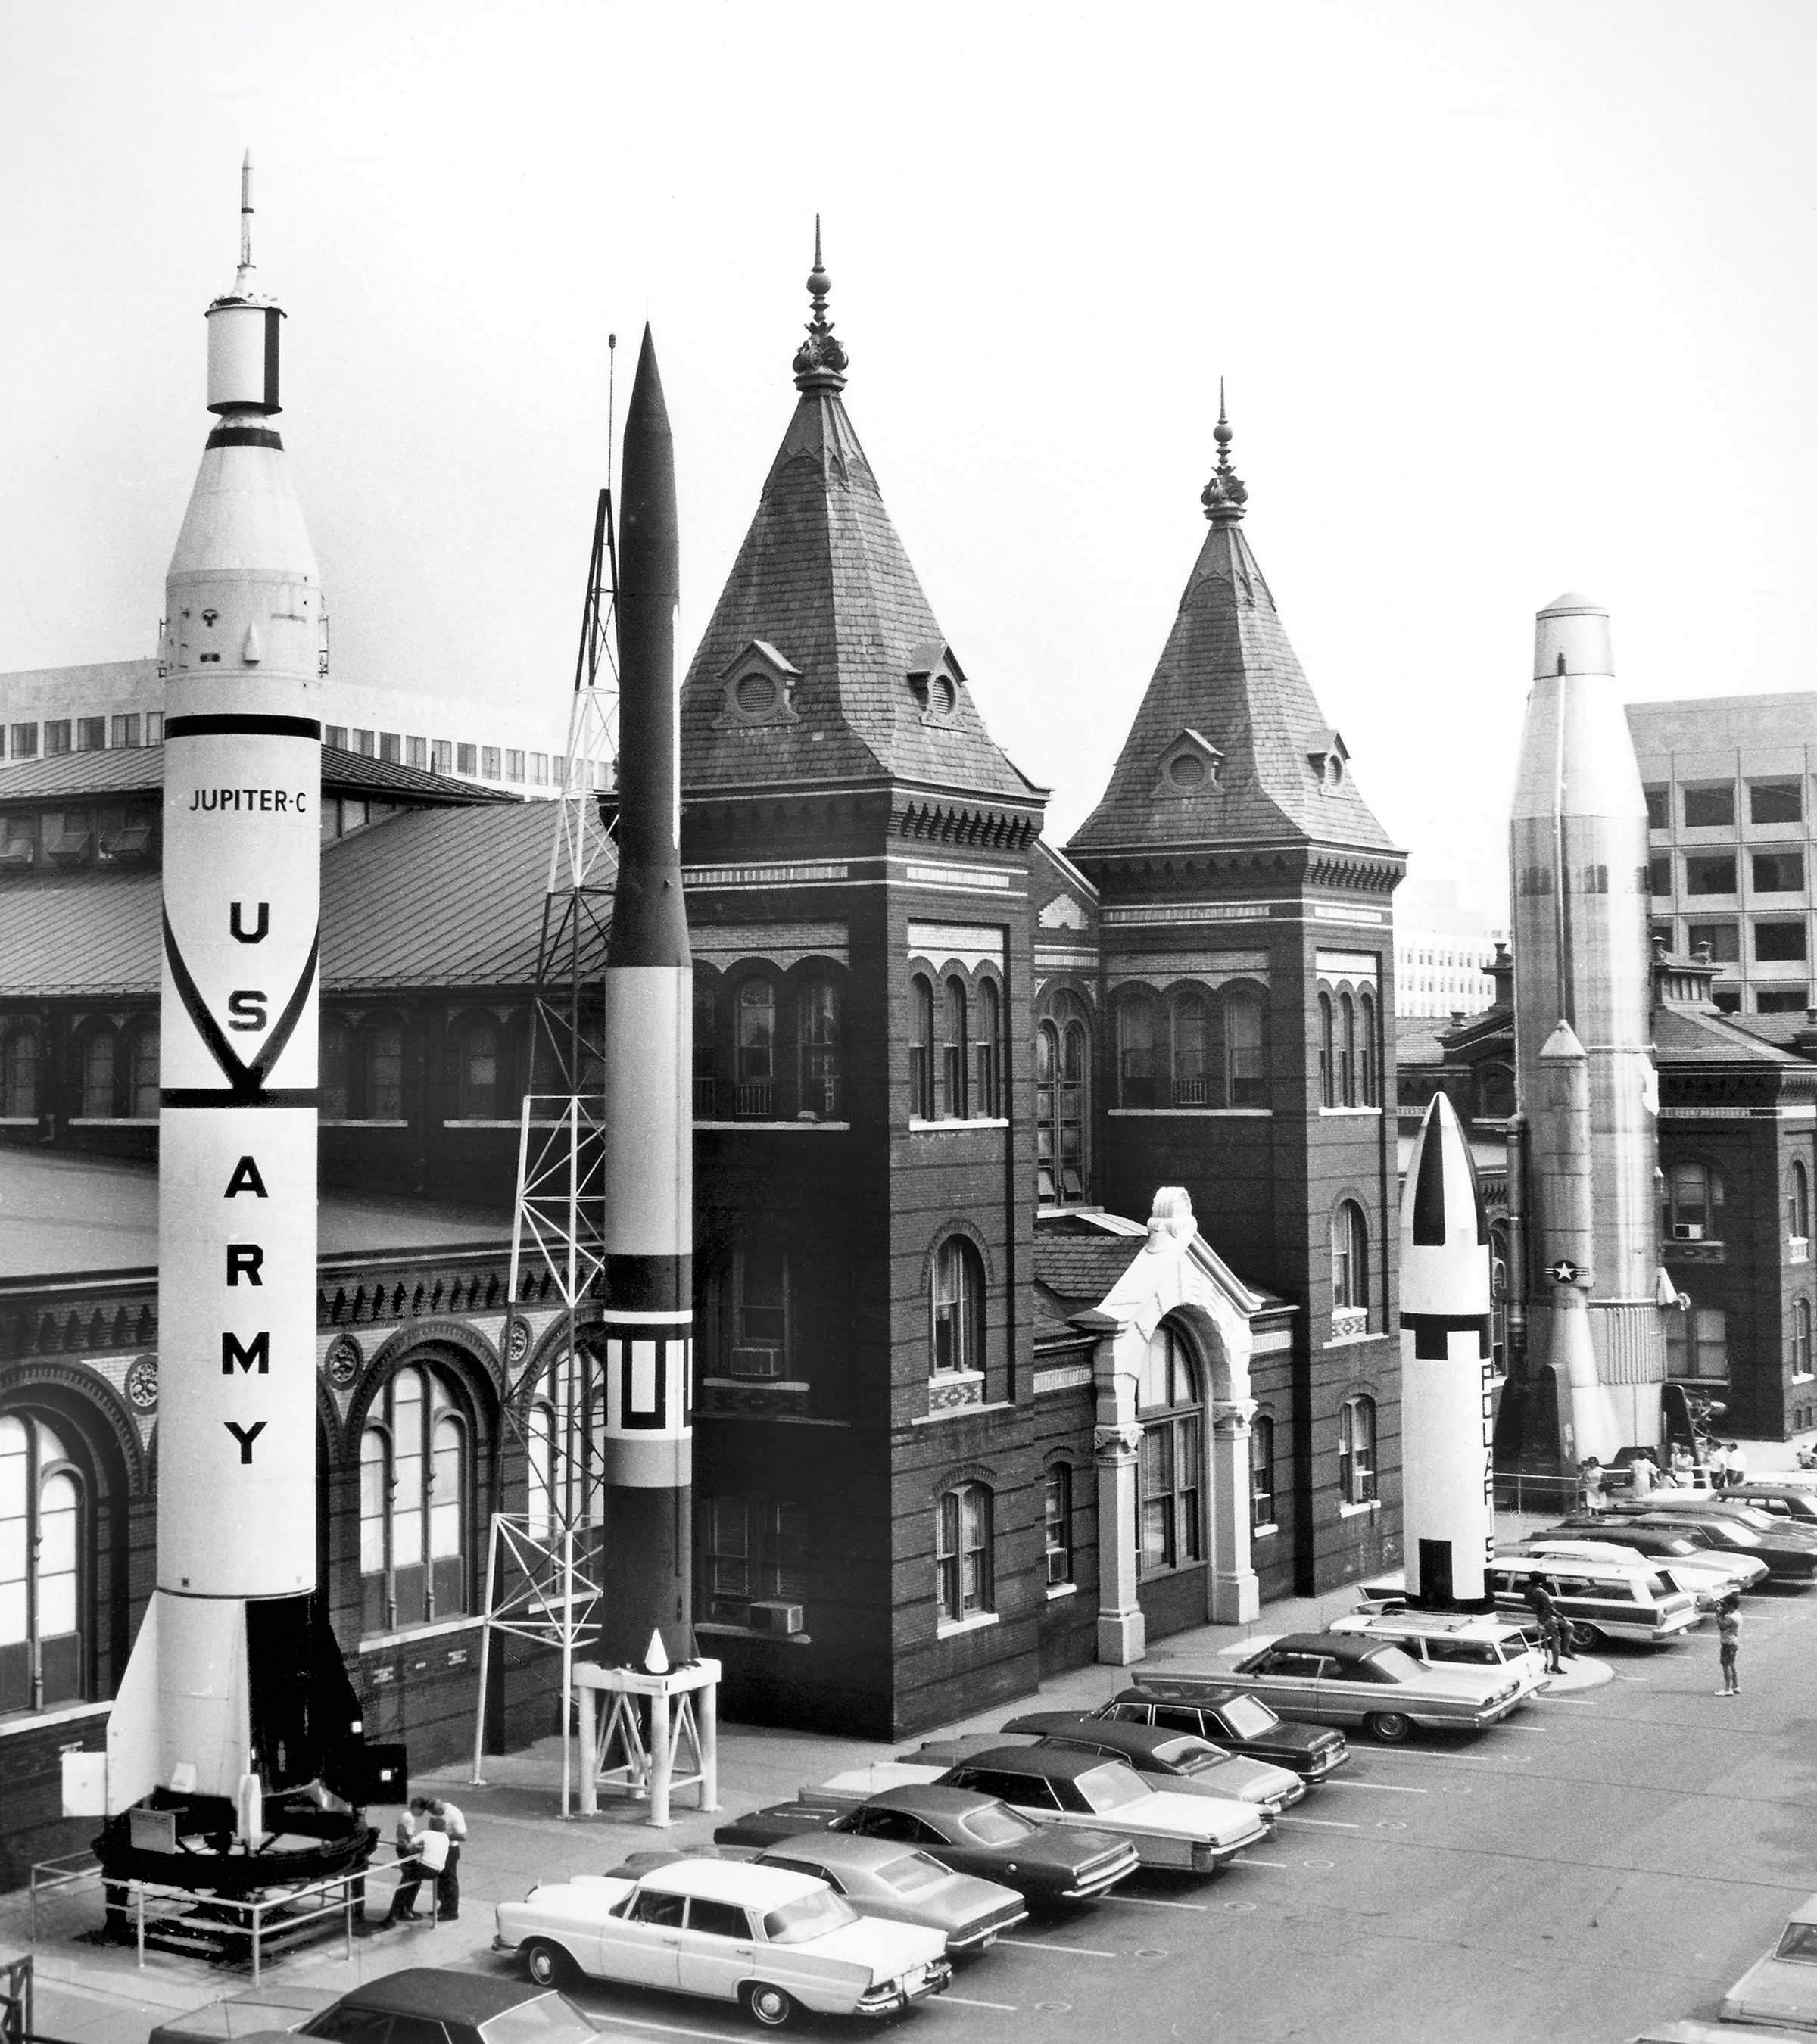 Rocket Row, Arts and Industries Building